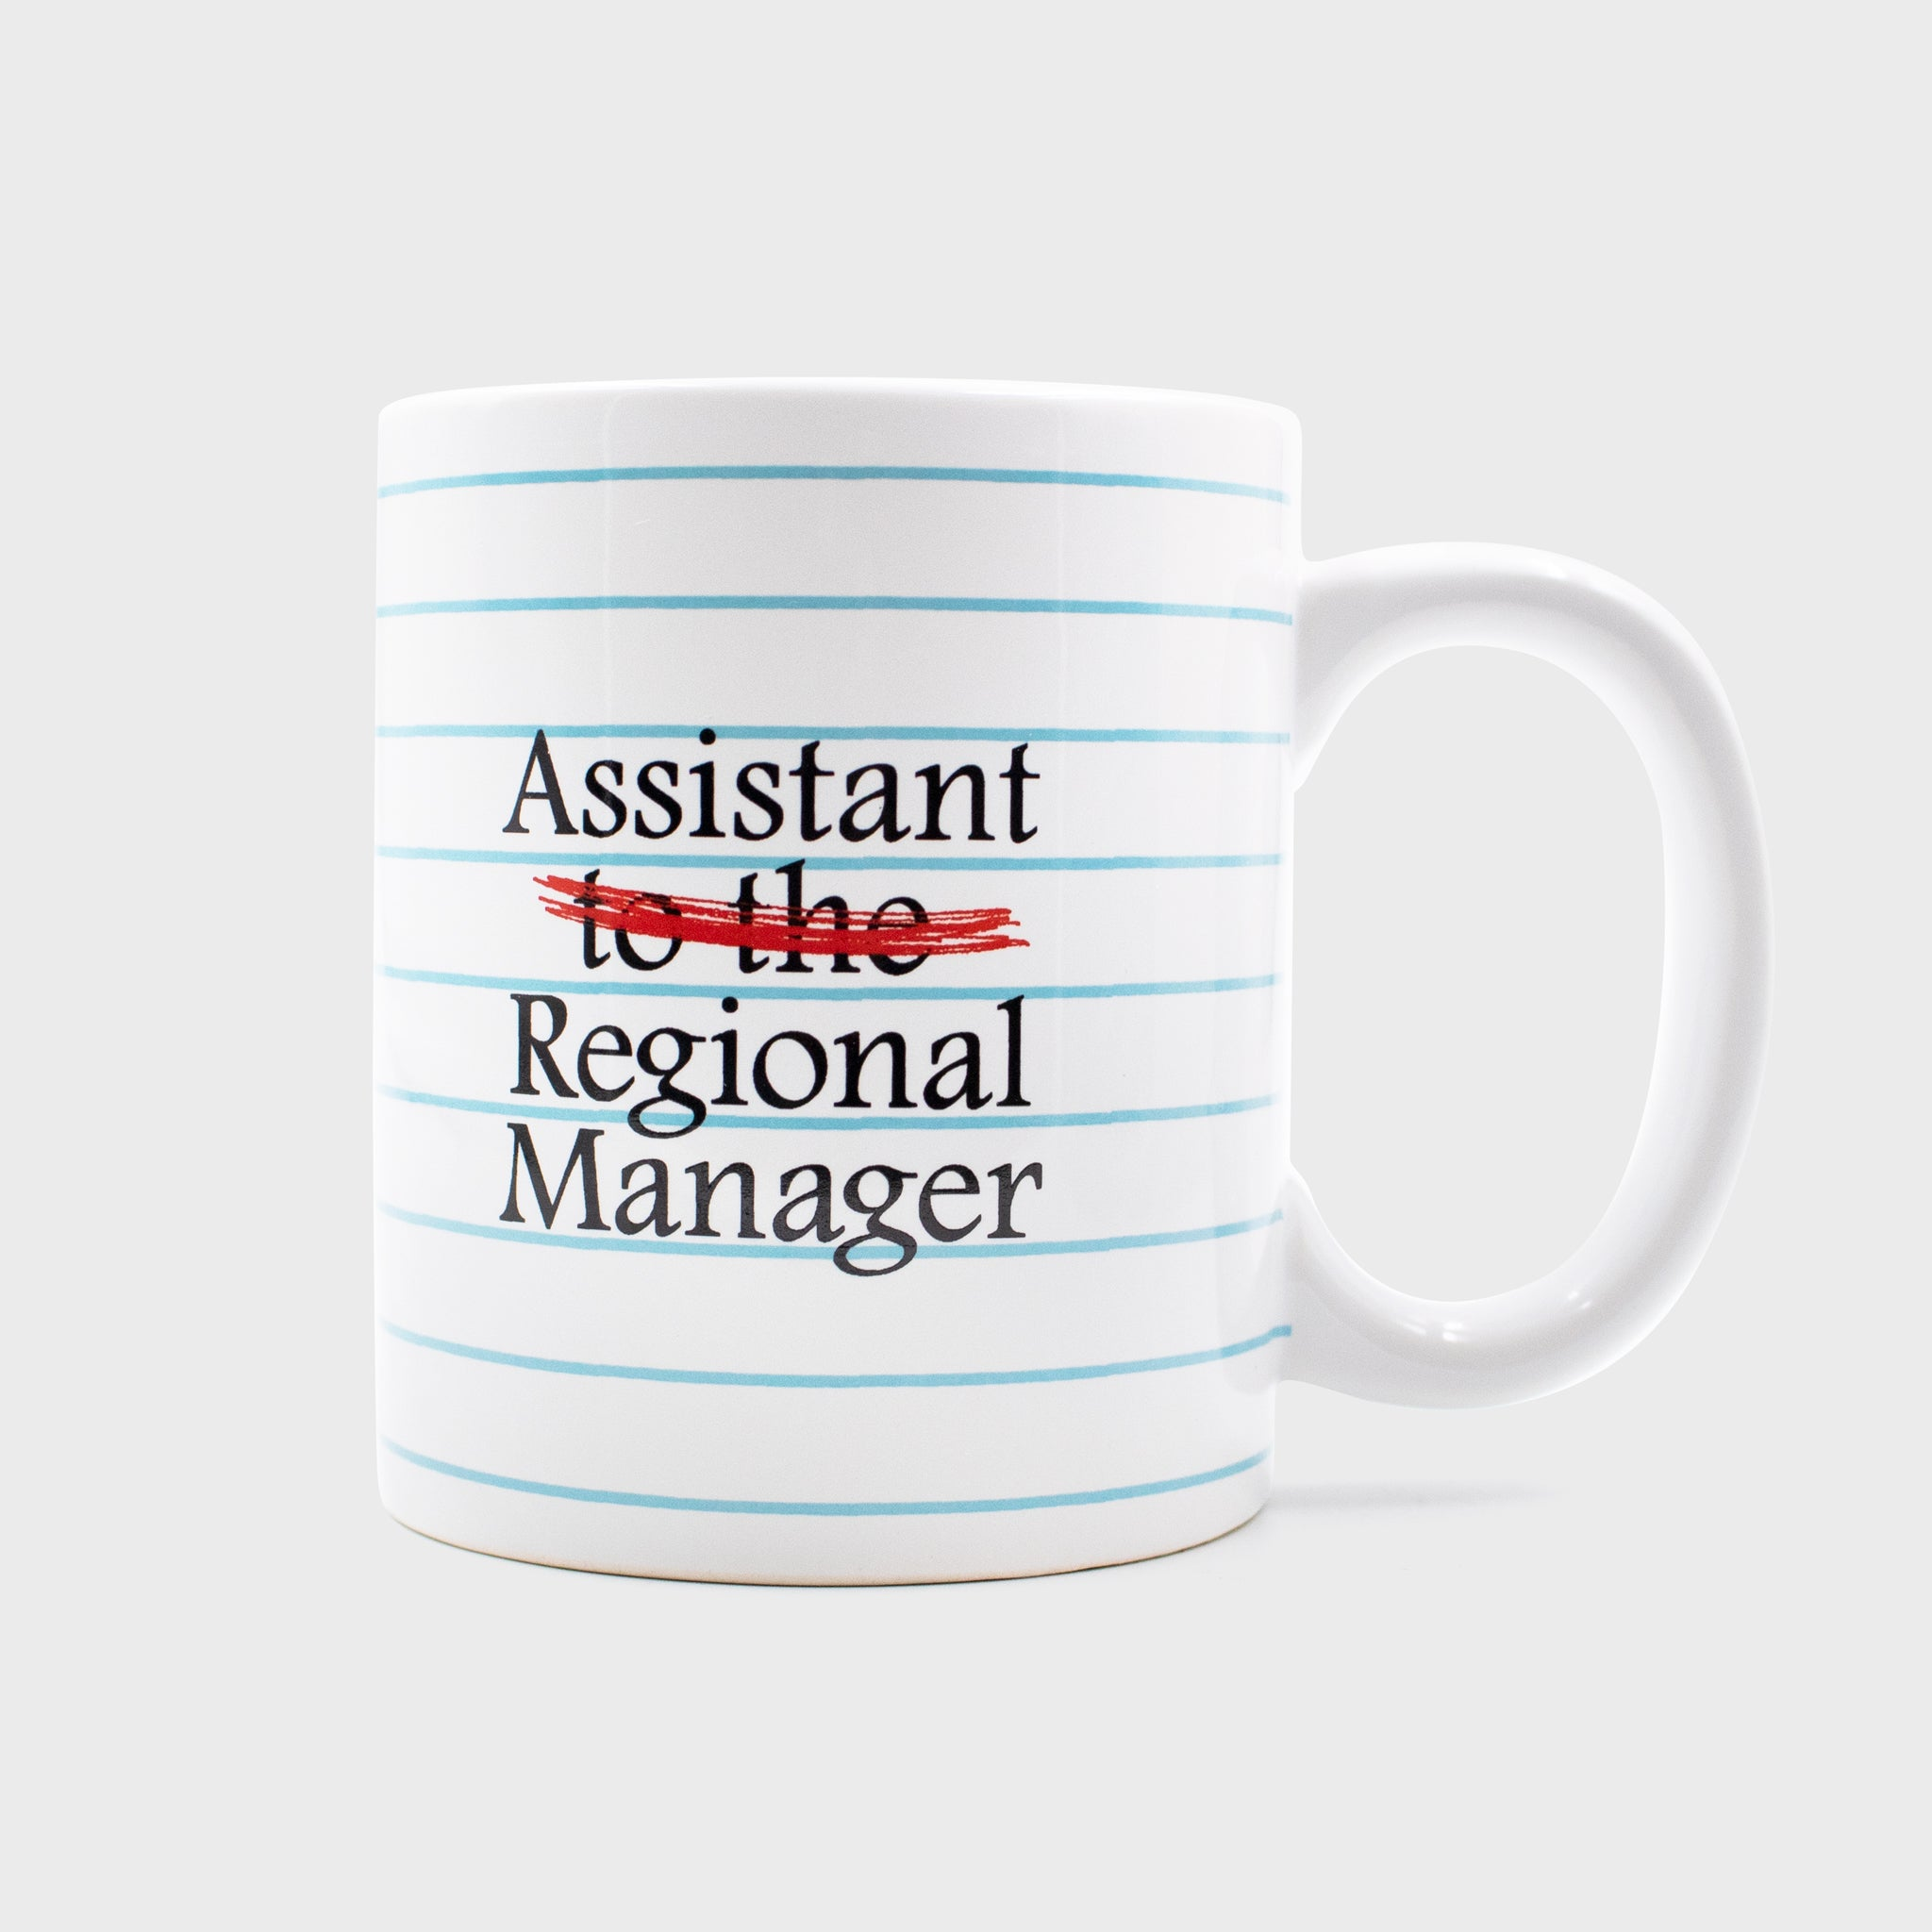 mug the office assistant to the regional manager home good culturefly houseware drinkware